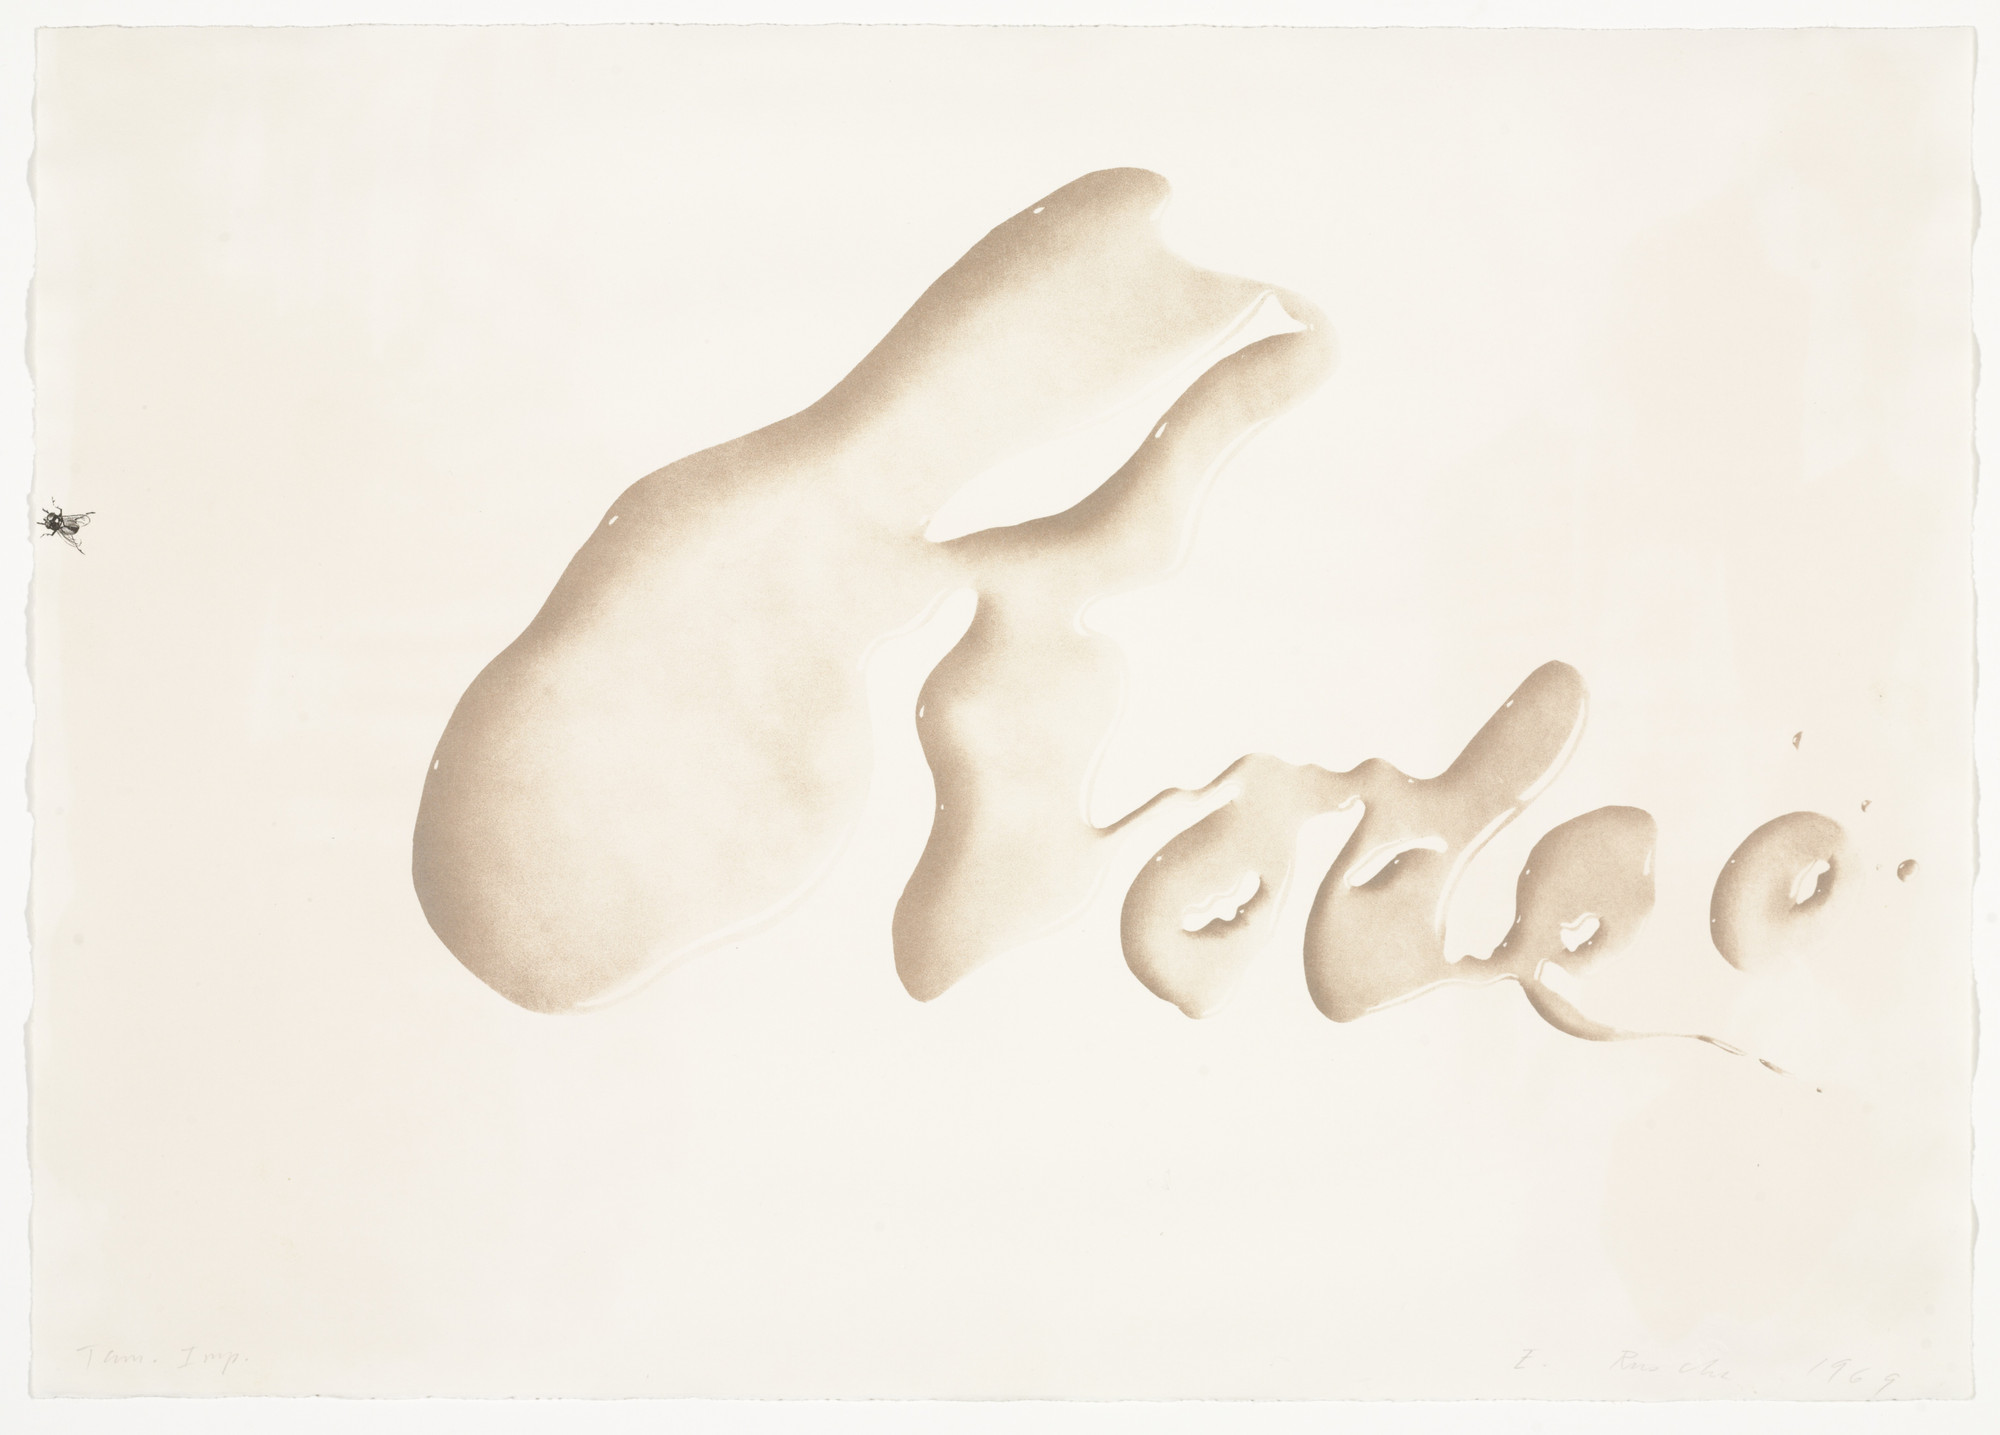 Edward Ruscha. Rodeo. (January 22-24) 1969